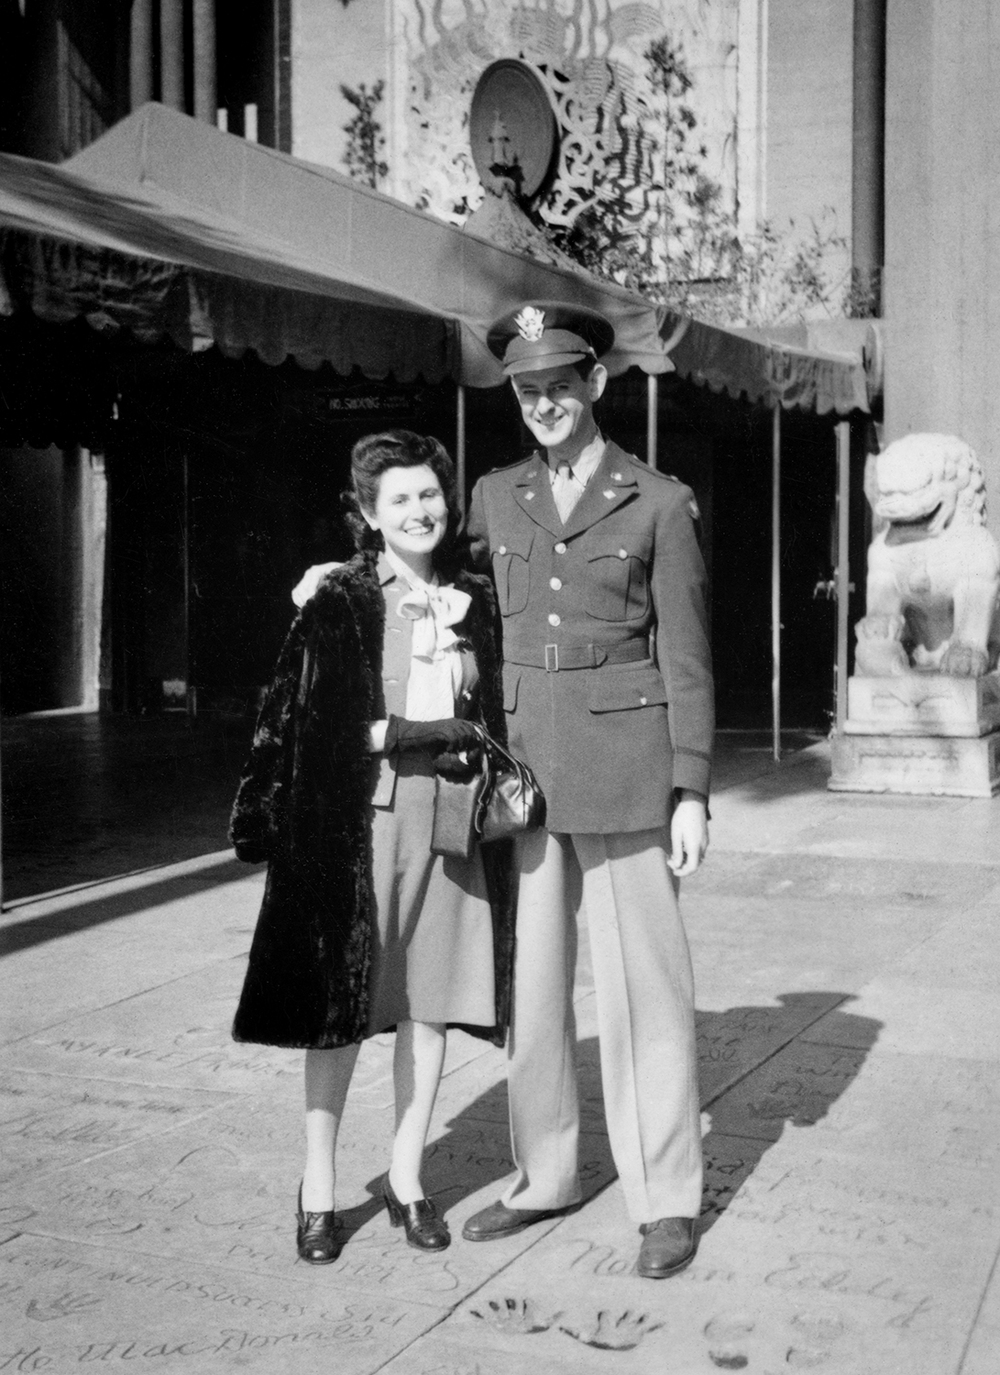 Jean and Fred Outside of Grauman's Chinese Theater in LA